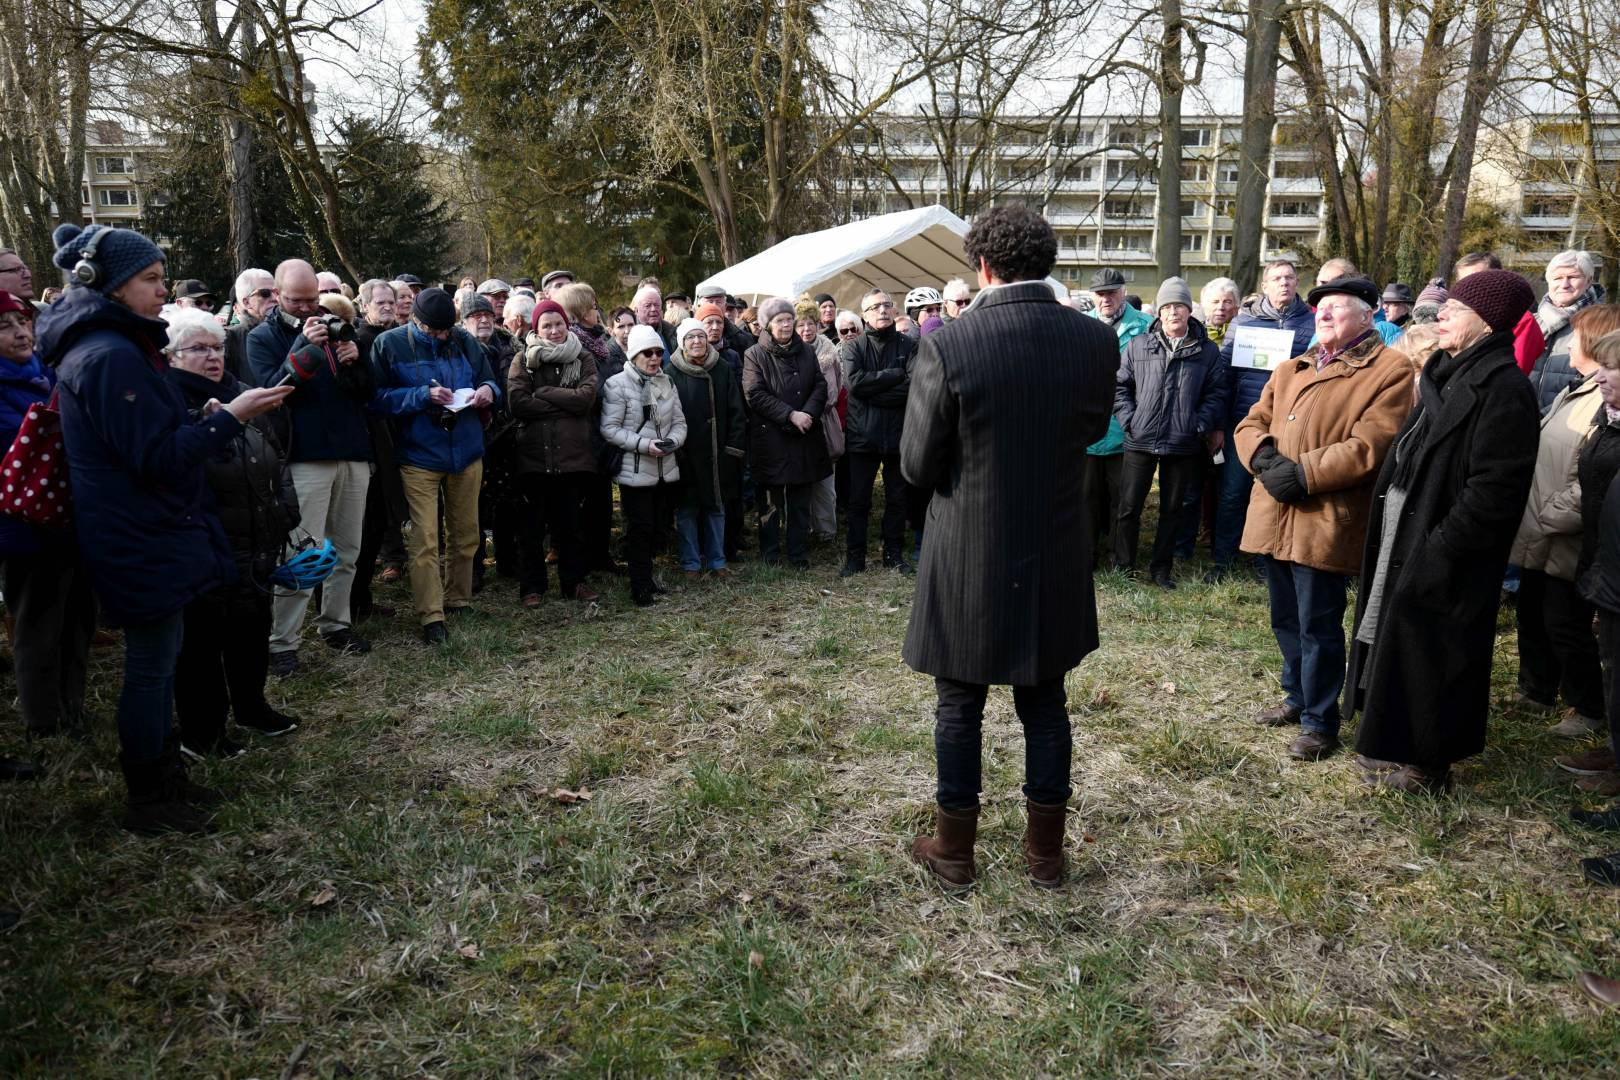 One man and a crowd. Hotel investor Hans Jürg Buff faces the people who want to preserve the trees on his property. (Leica SL, 24-90, 24 mm, 1/160 sec, f/3.2, ISO 50)